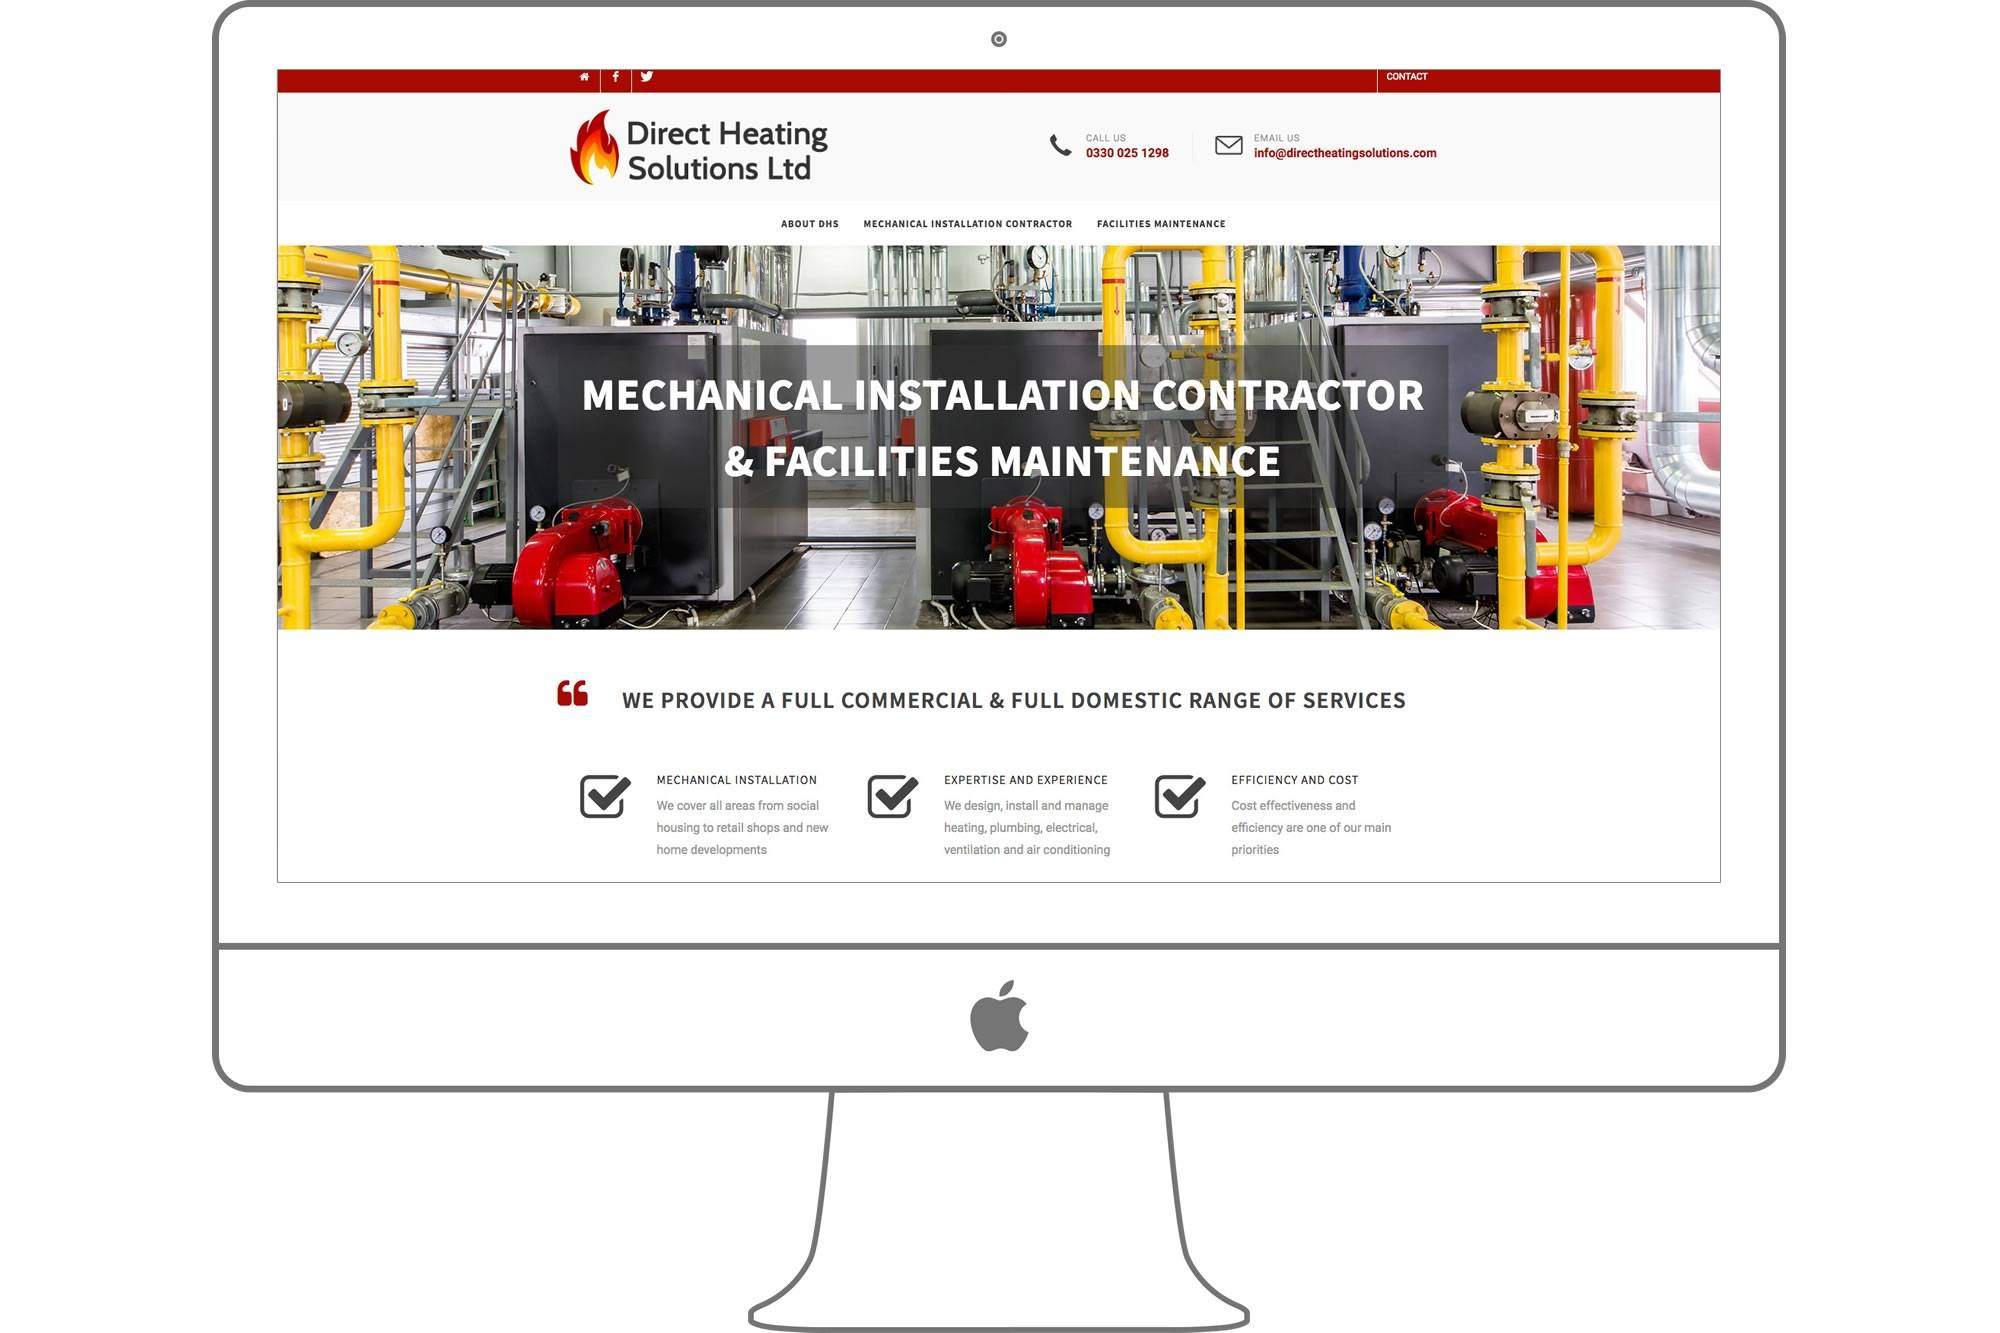 Direct Heating Solutions Ltd Website by Big Decision